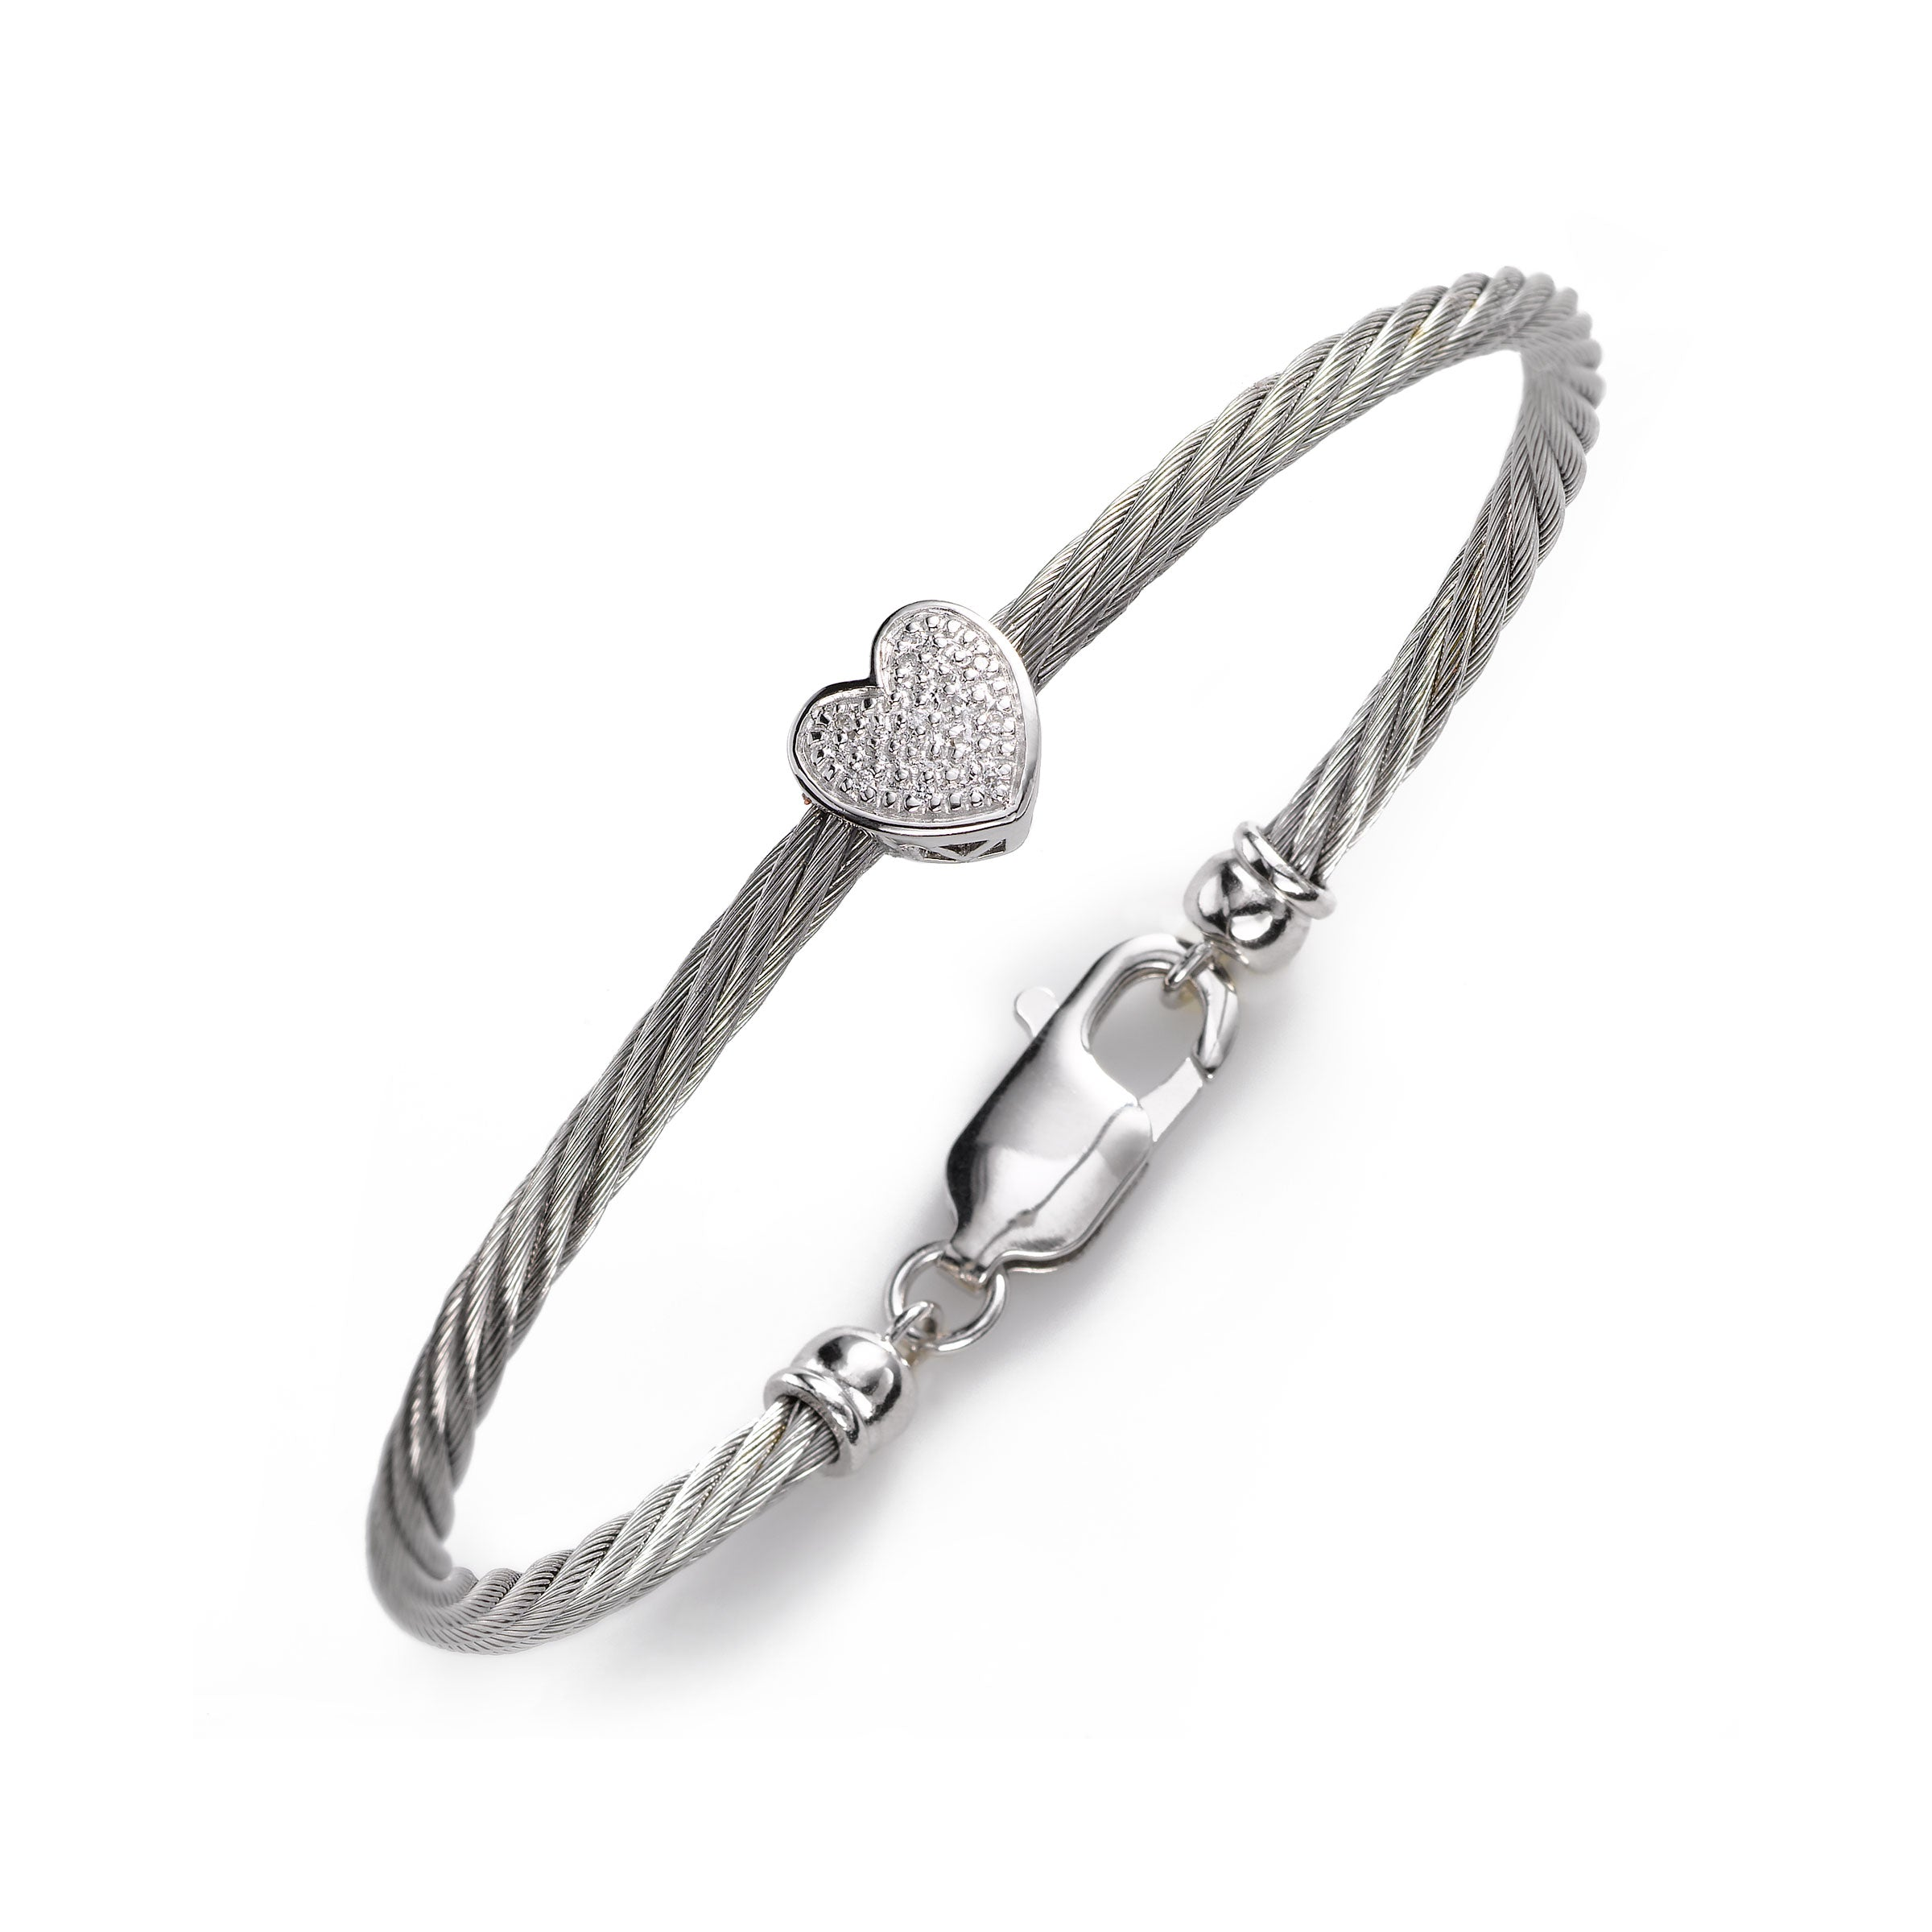 Child's Diamond Heart Bracelet, Sterling Silver and Stainless Steel